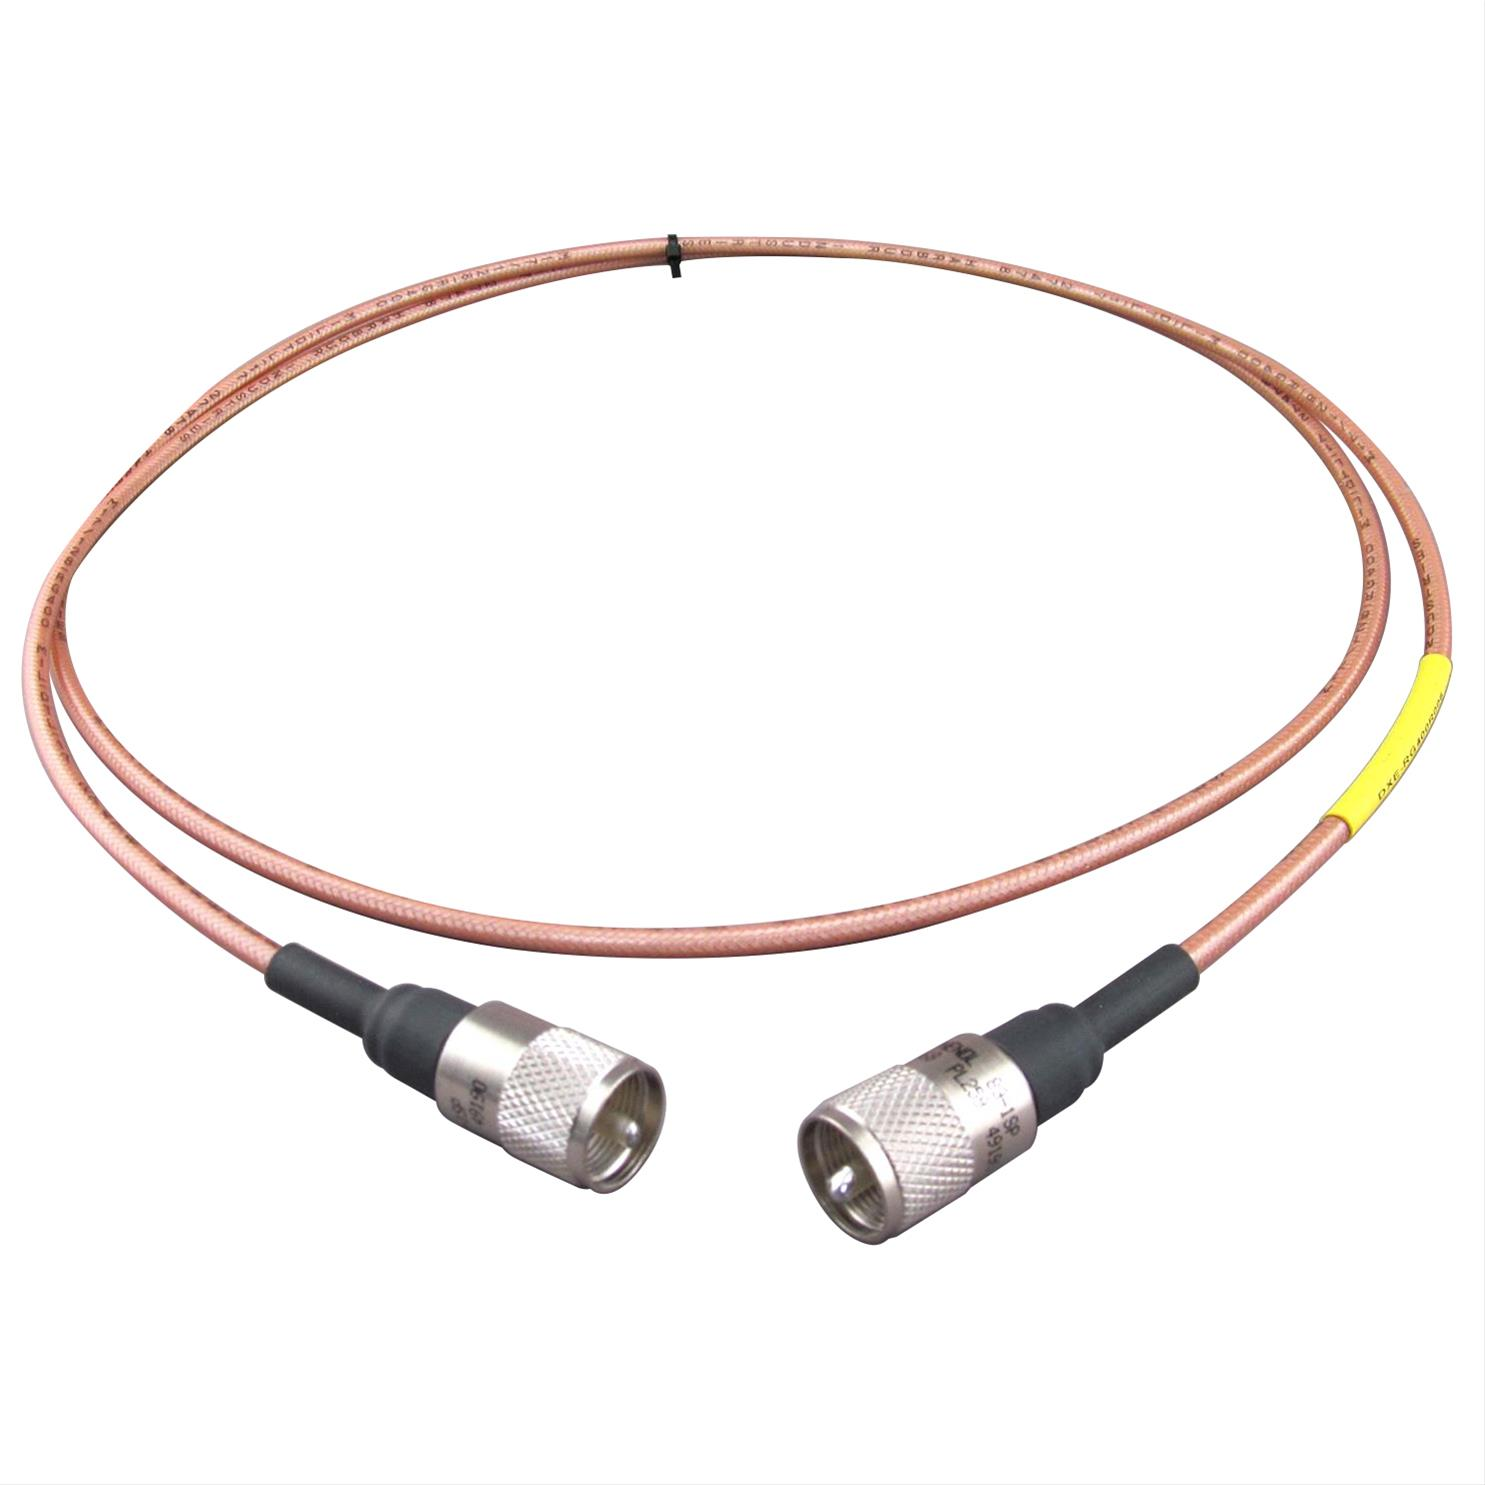 Coaxial Cable Assemblies : Dx engineering rg high isolation coaxial cable